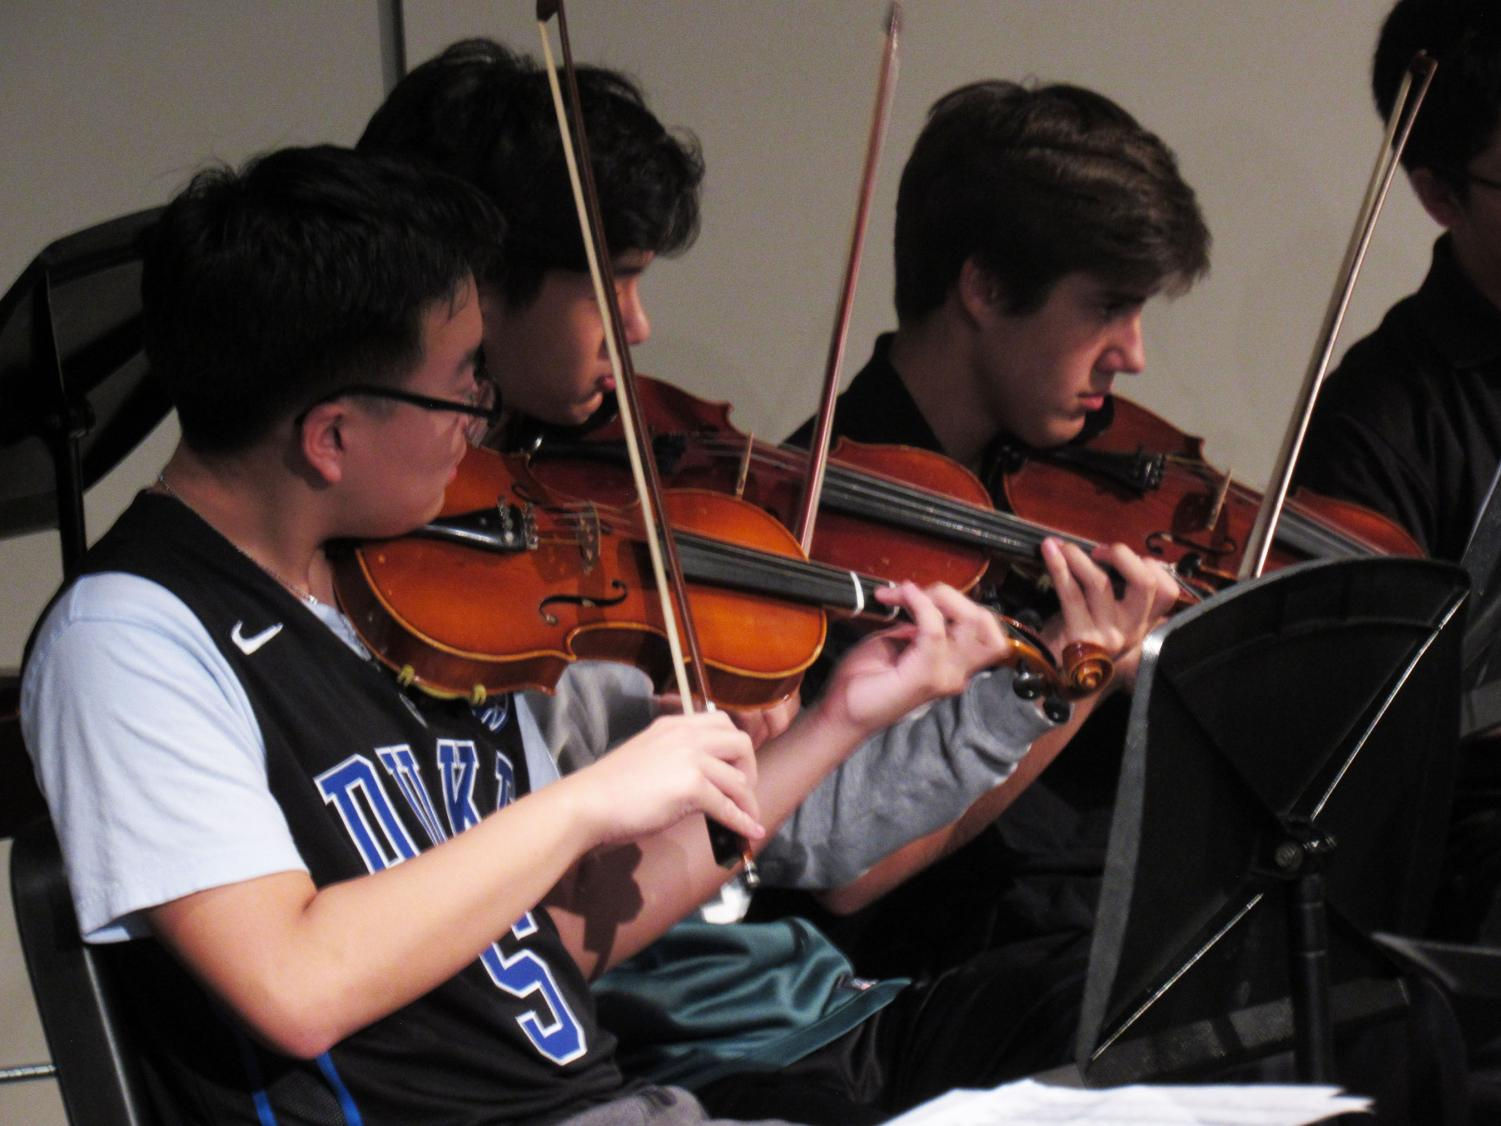 Violins in the Symphonic Orchestra perform during the Fur, Fins, & Feathers Halloween Concert (Photo by Anja O'Brien).